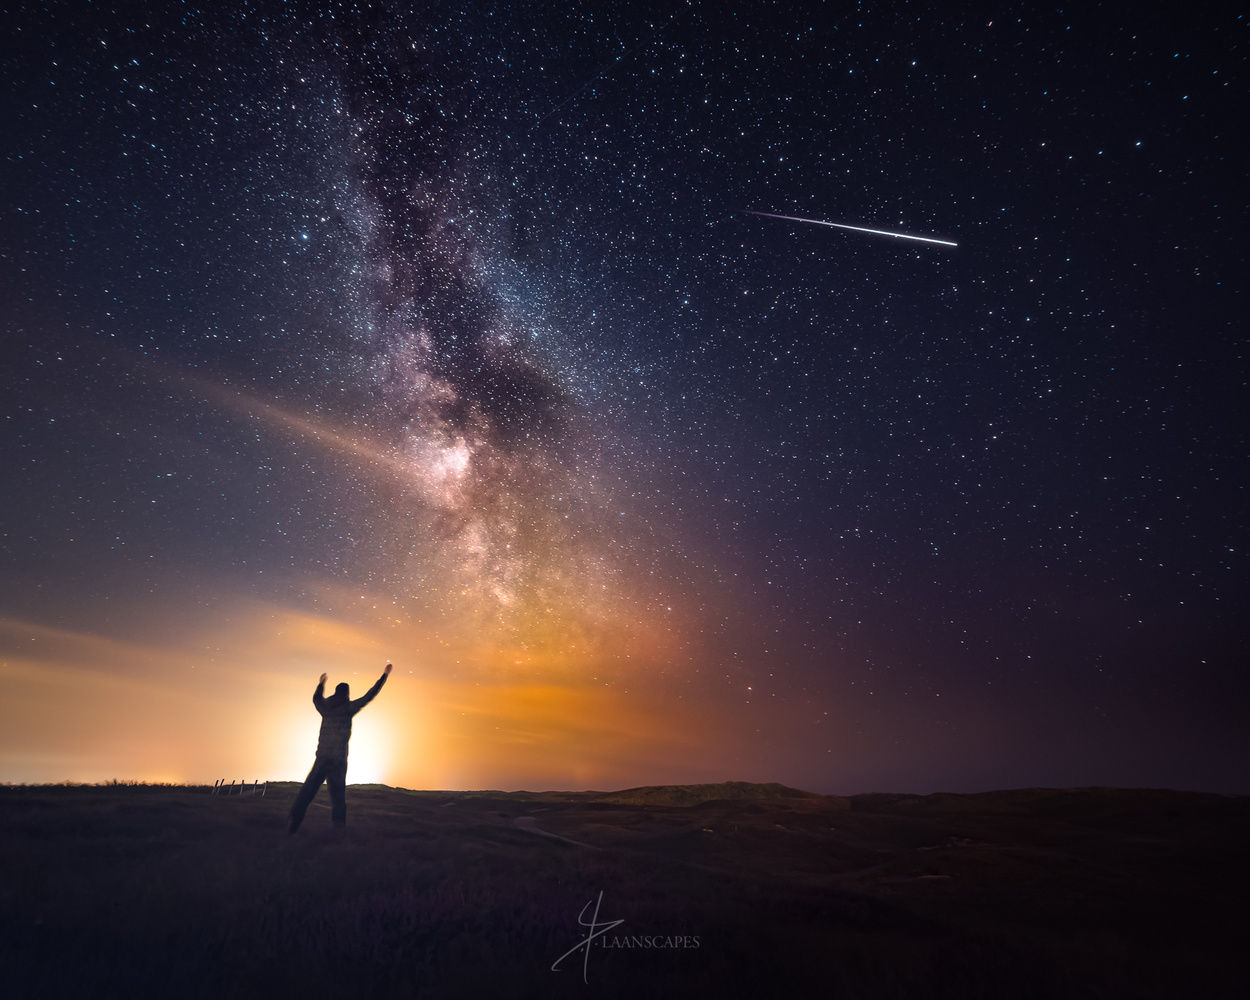 Photograph of a man greeting the International Space Station with the Milky Way overhead.